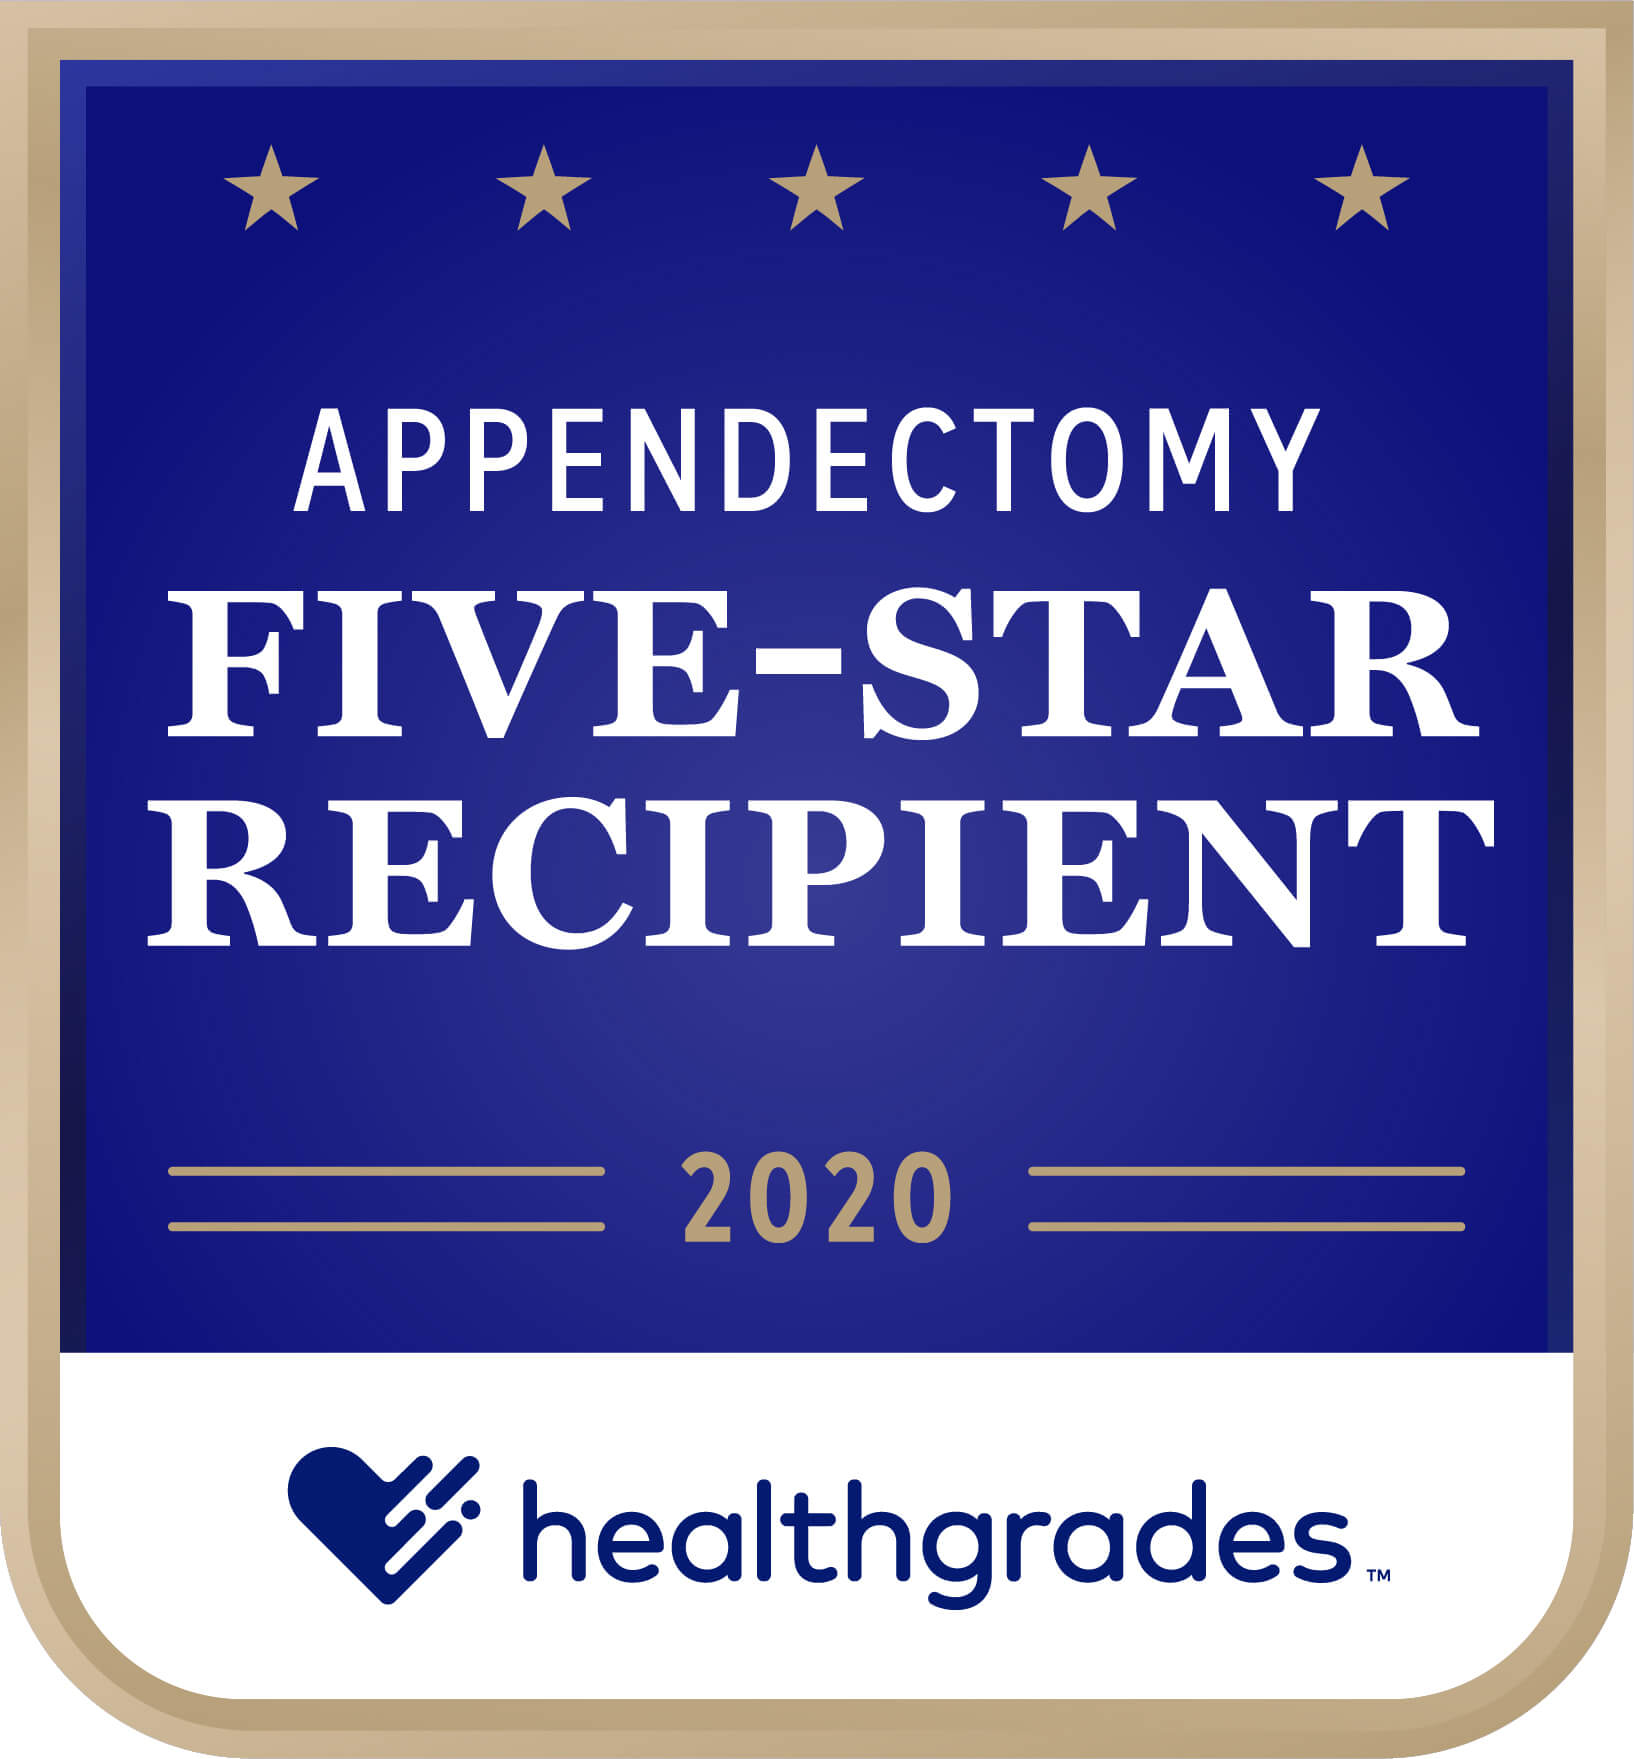 Healthgrades Five-Star Recipient for Appendectomy Award 2020